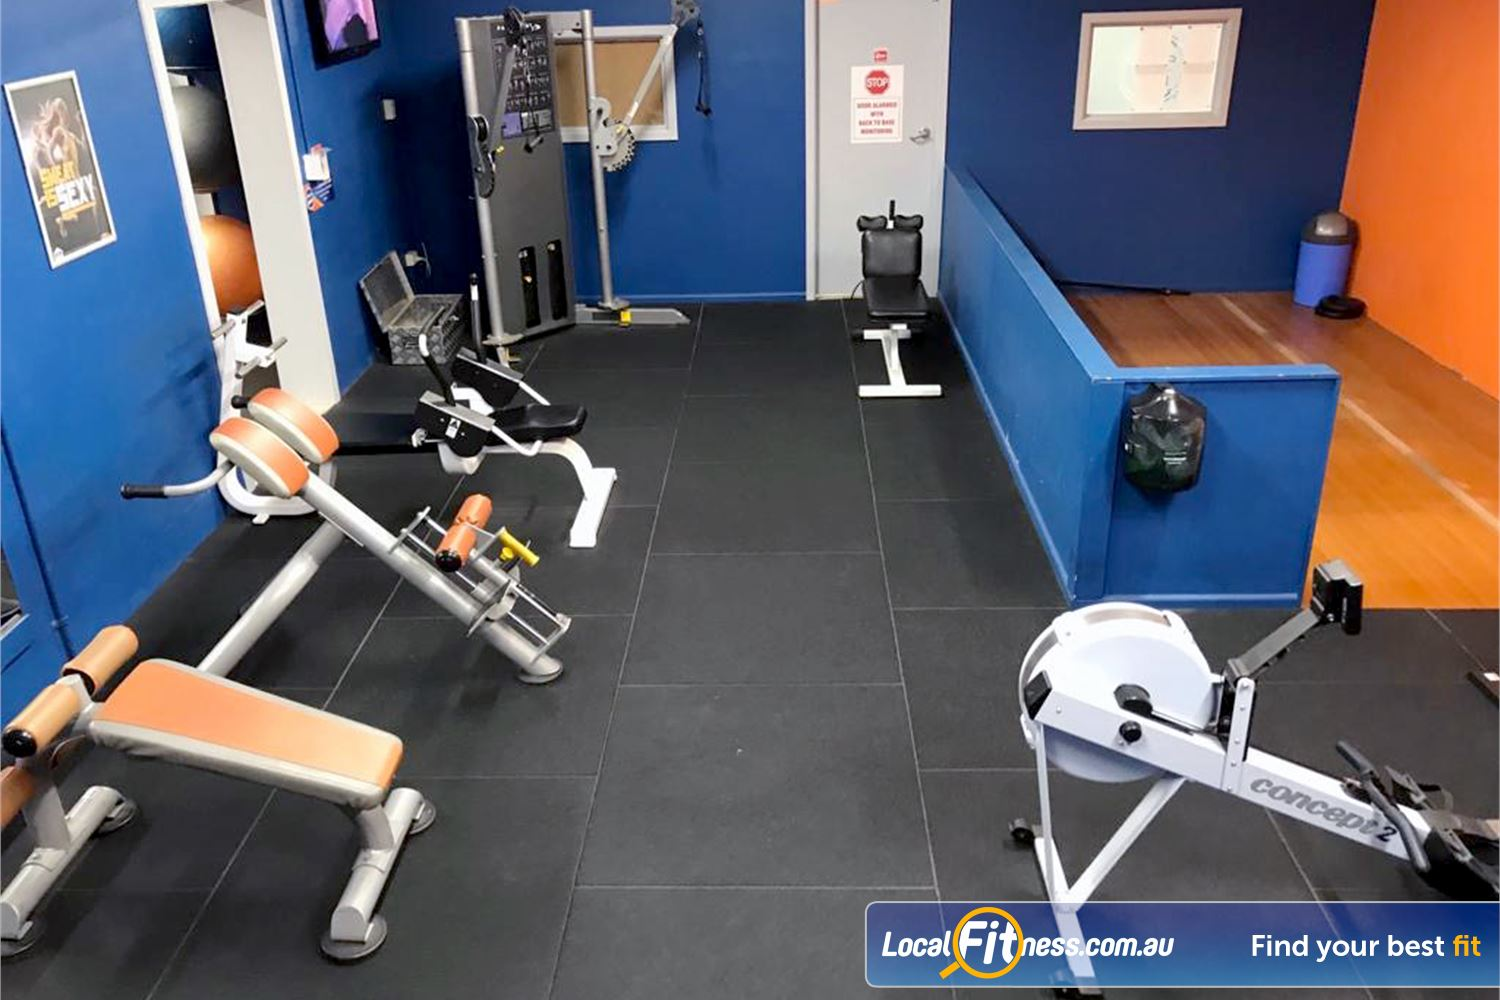 Plus Fitness Health Clubs Near Baulkham Hills The dedicated abs and stretching zone.